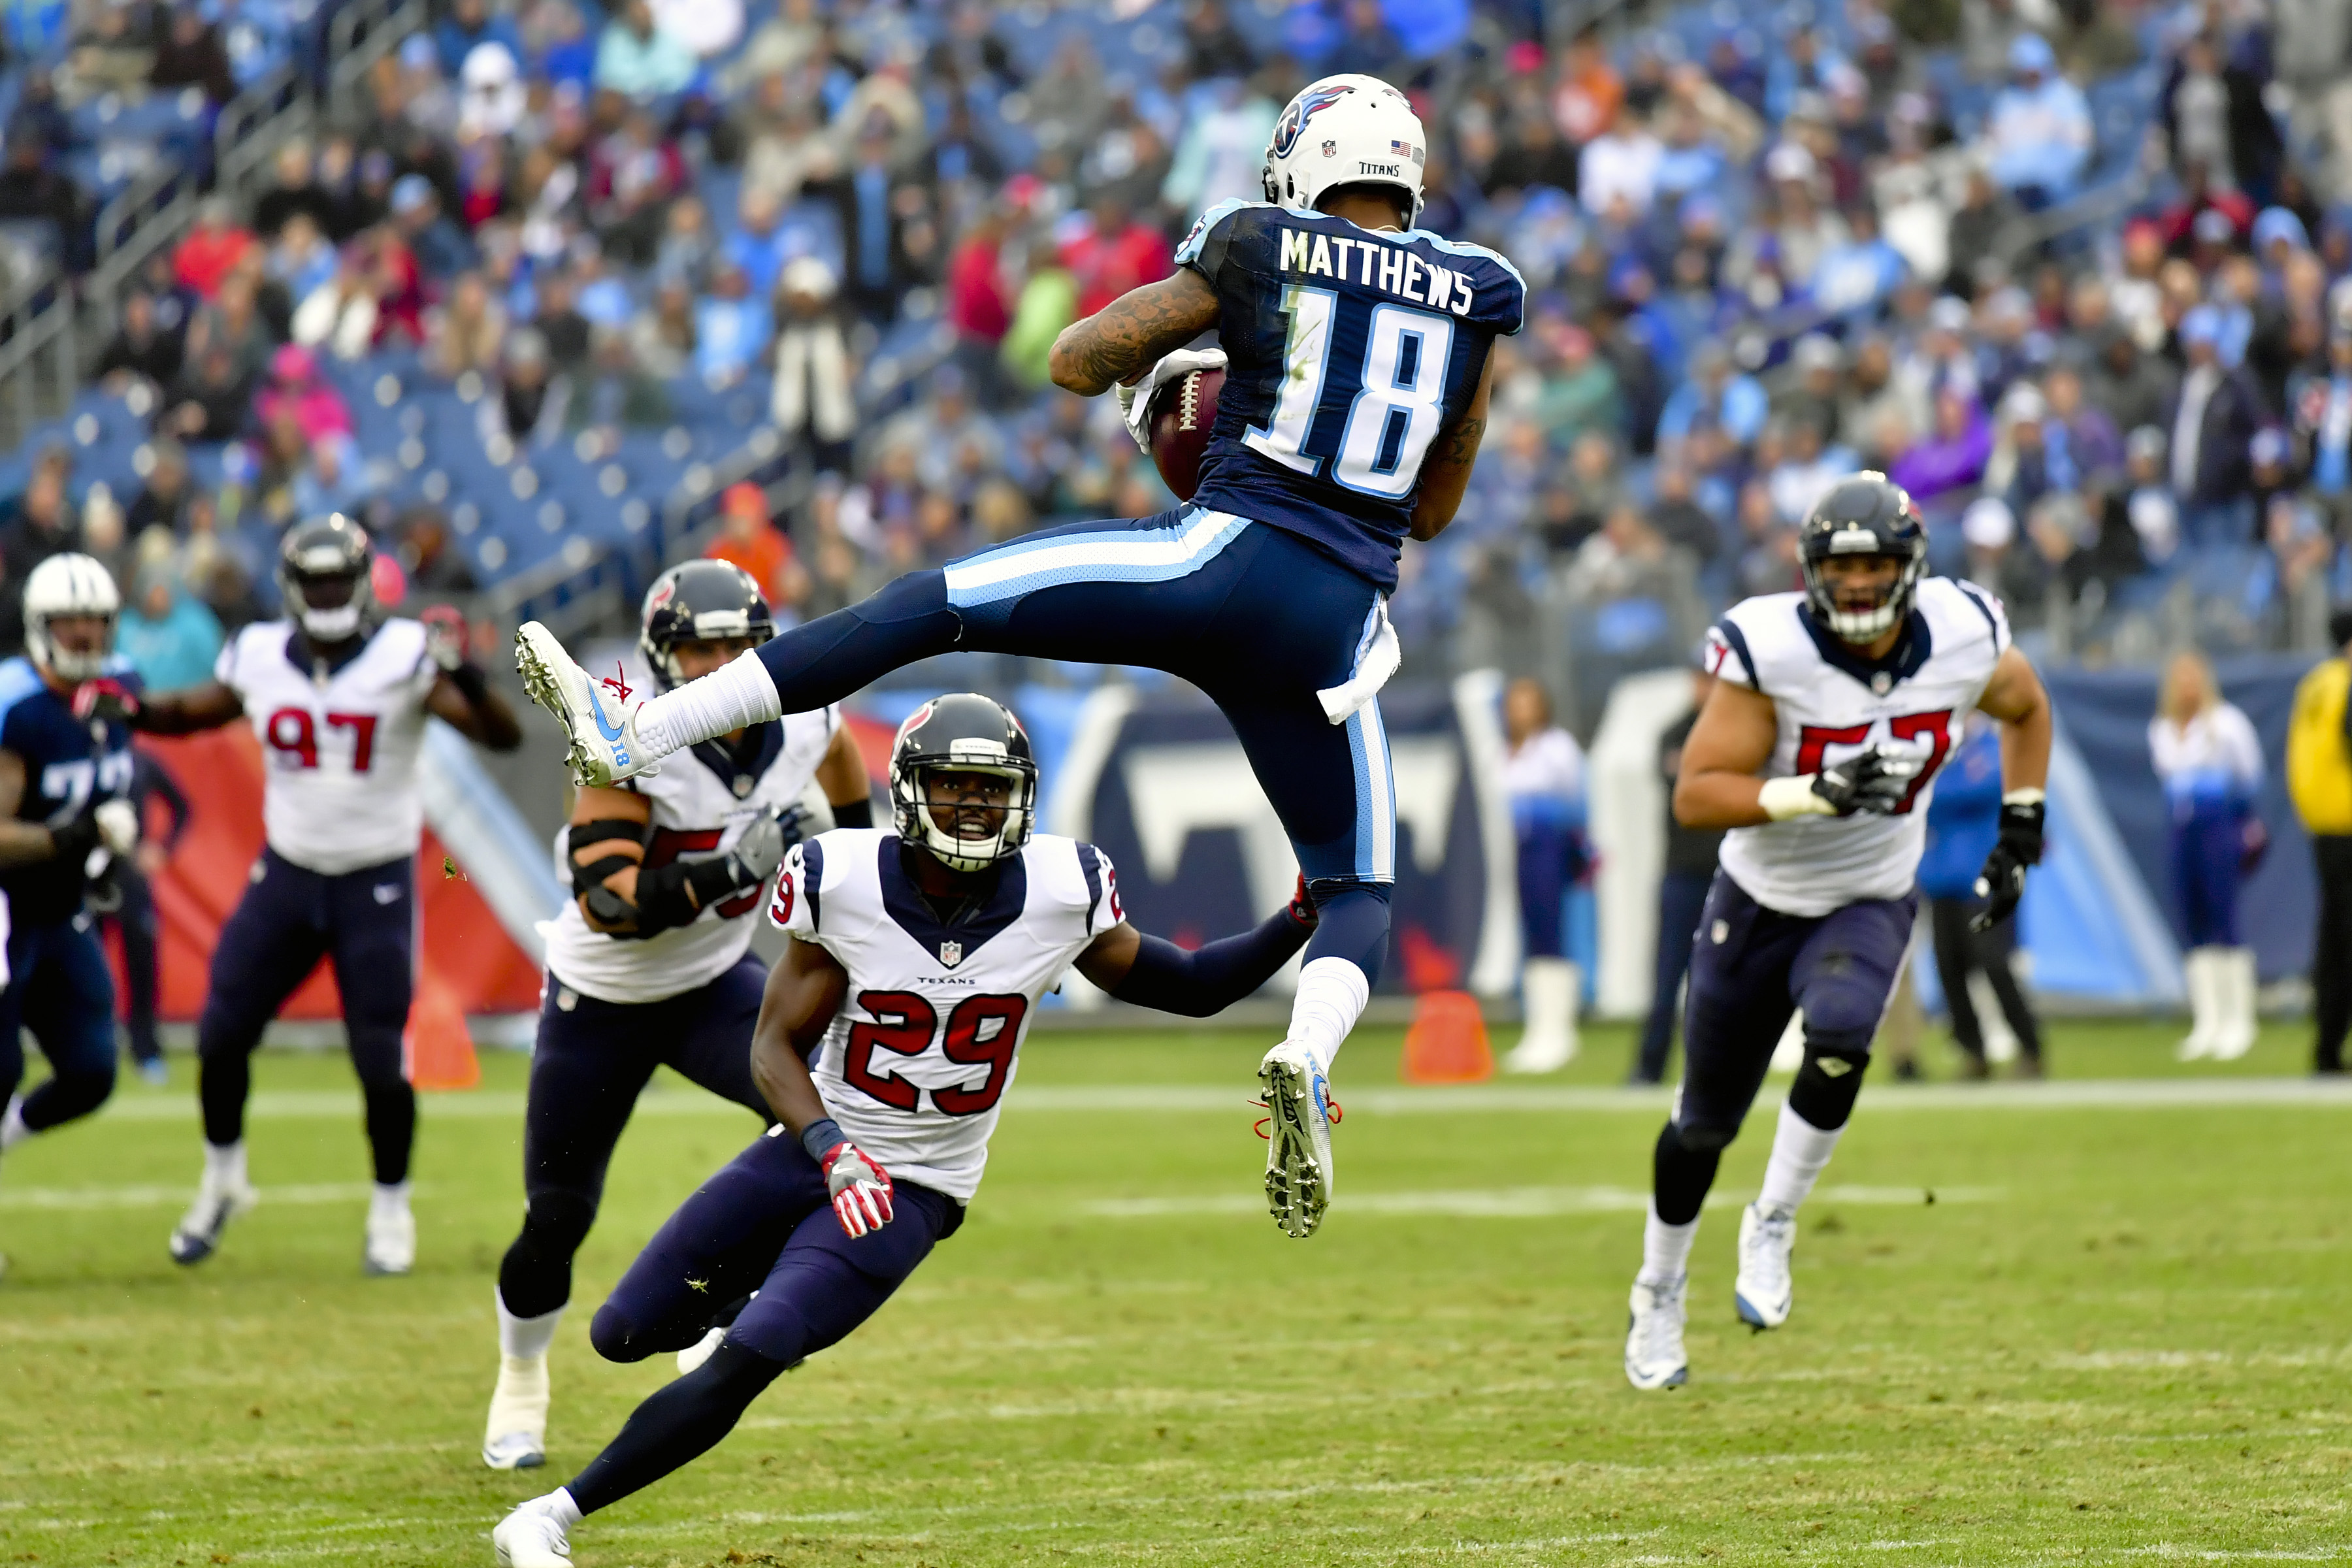 9781565-nfl-houston-texans-at-tennessee-titans